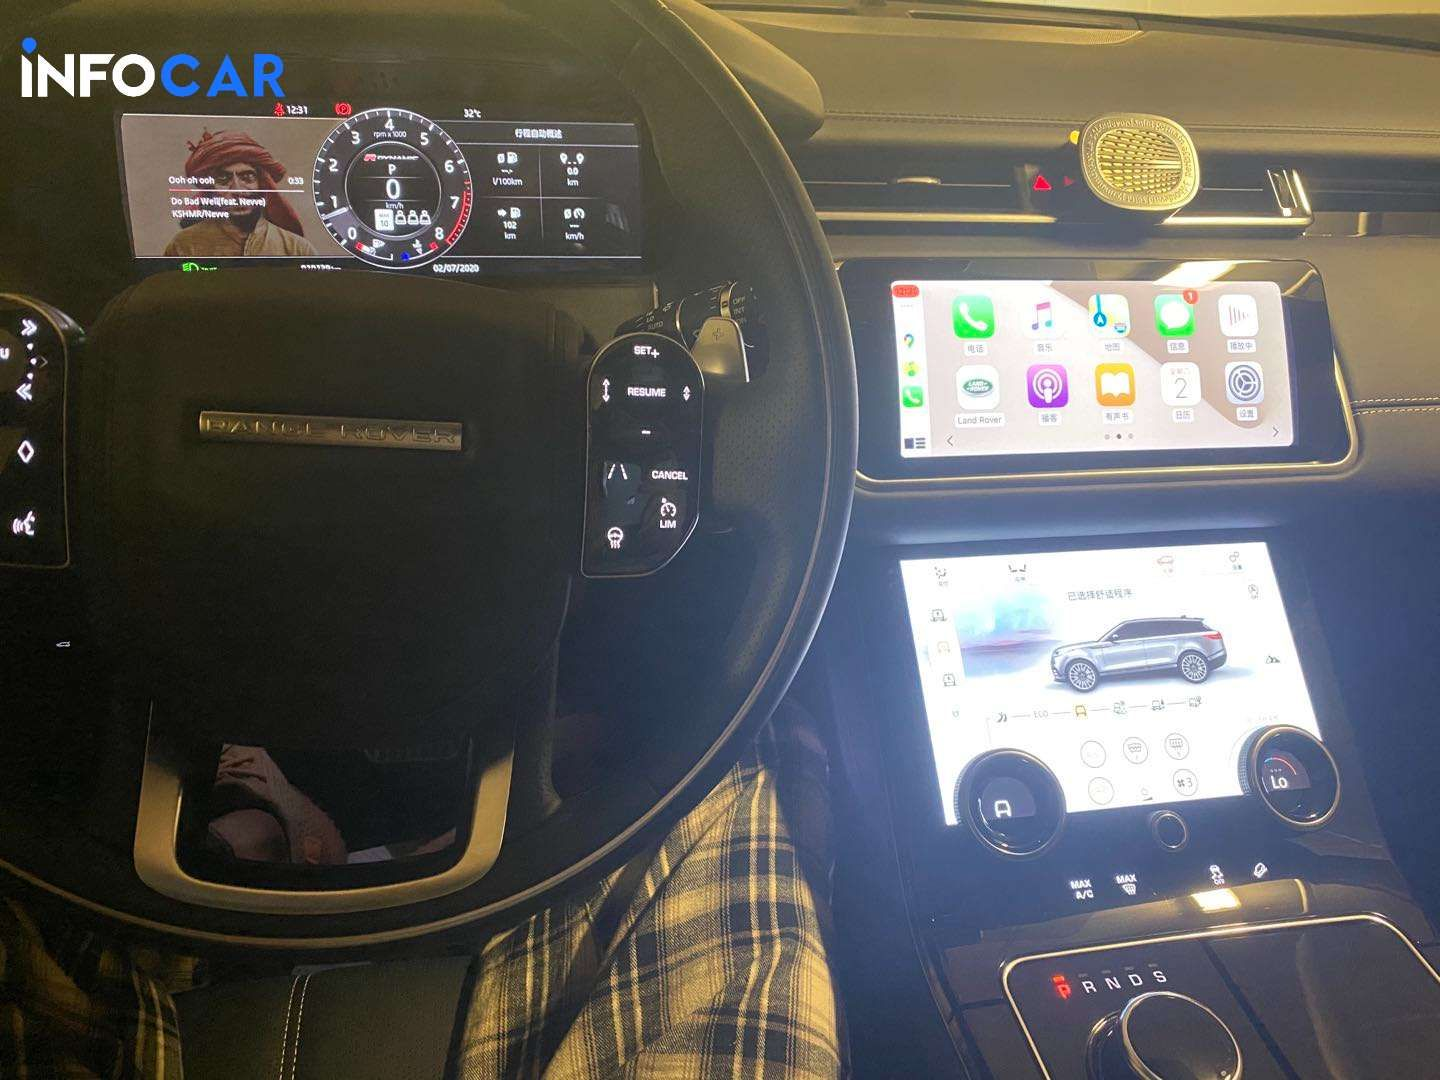 2019 Land Rover Range Rover Velar P380 HSE - INFOCAR - Toronto's Most Comprehensive New and Used Auto Trading Platform